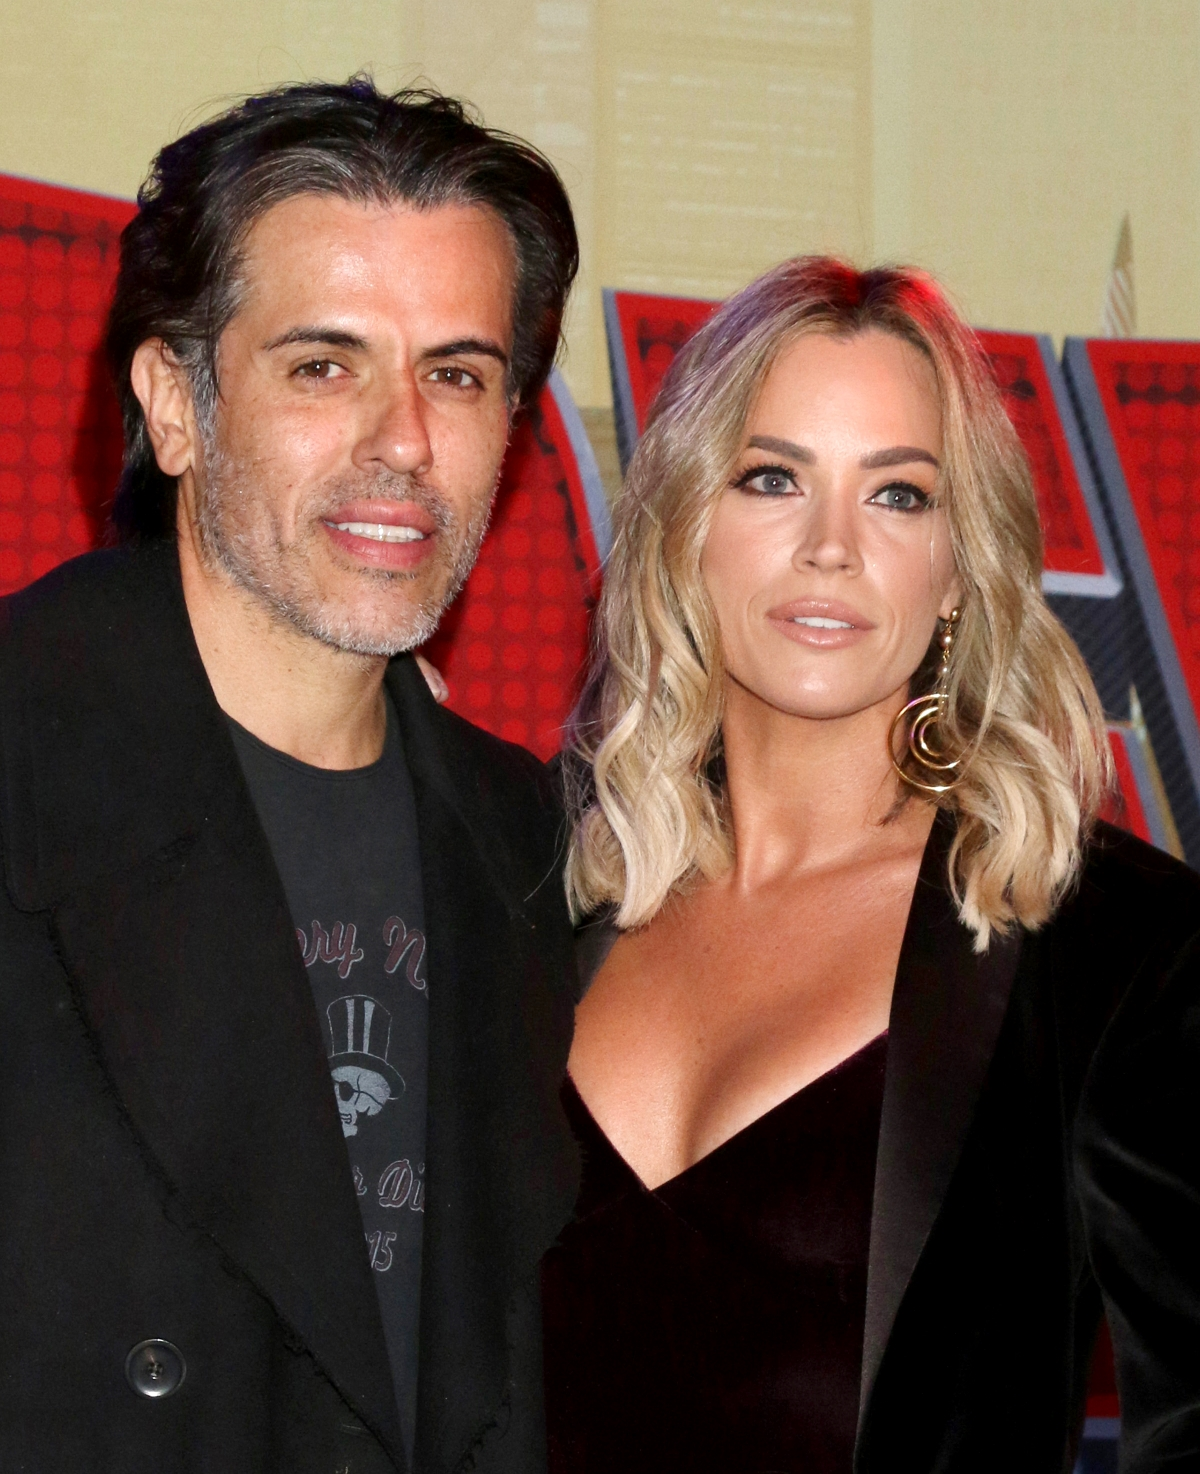 Edwin Arroyave Shares How Teddi Got the News of Her RHOBH Exit as He Posts Touching Tribute to His Wife, Plus What He Wishes Viewers Got to See About Her